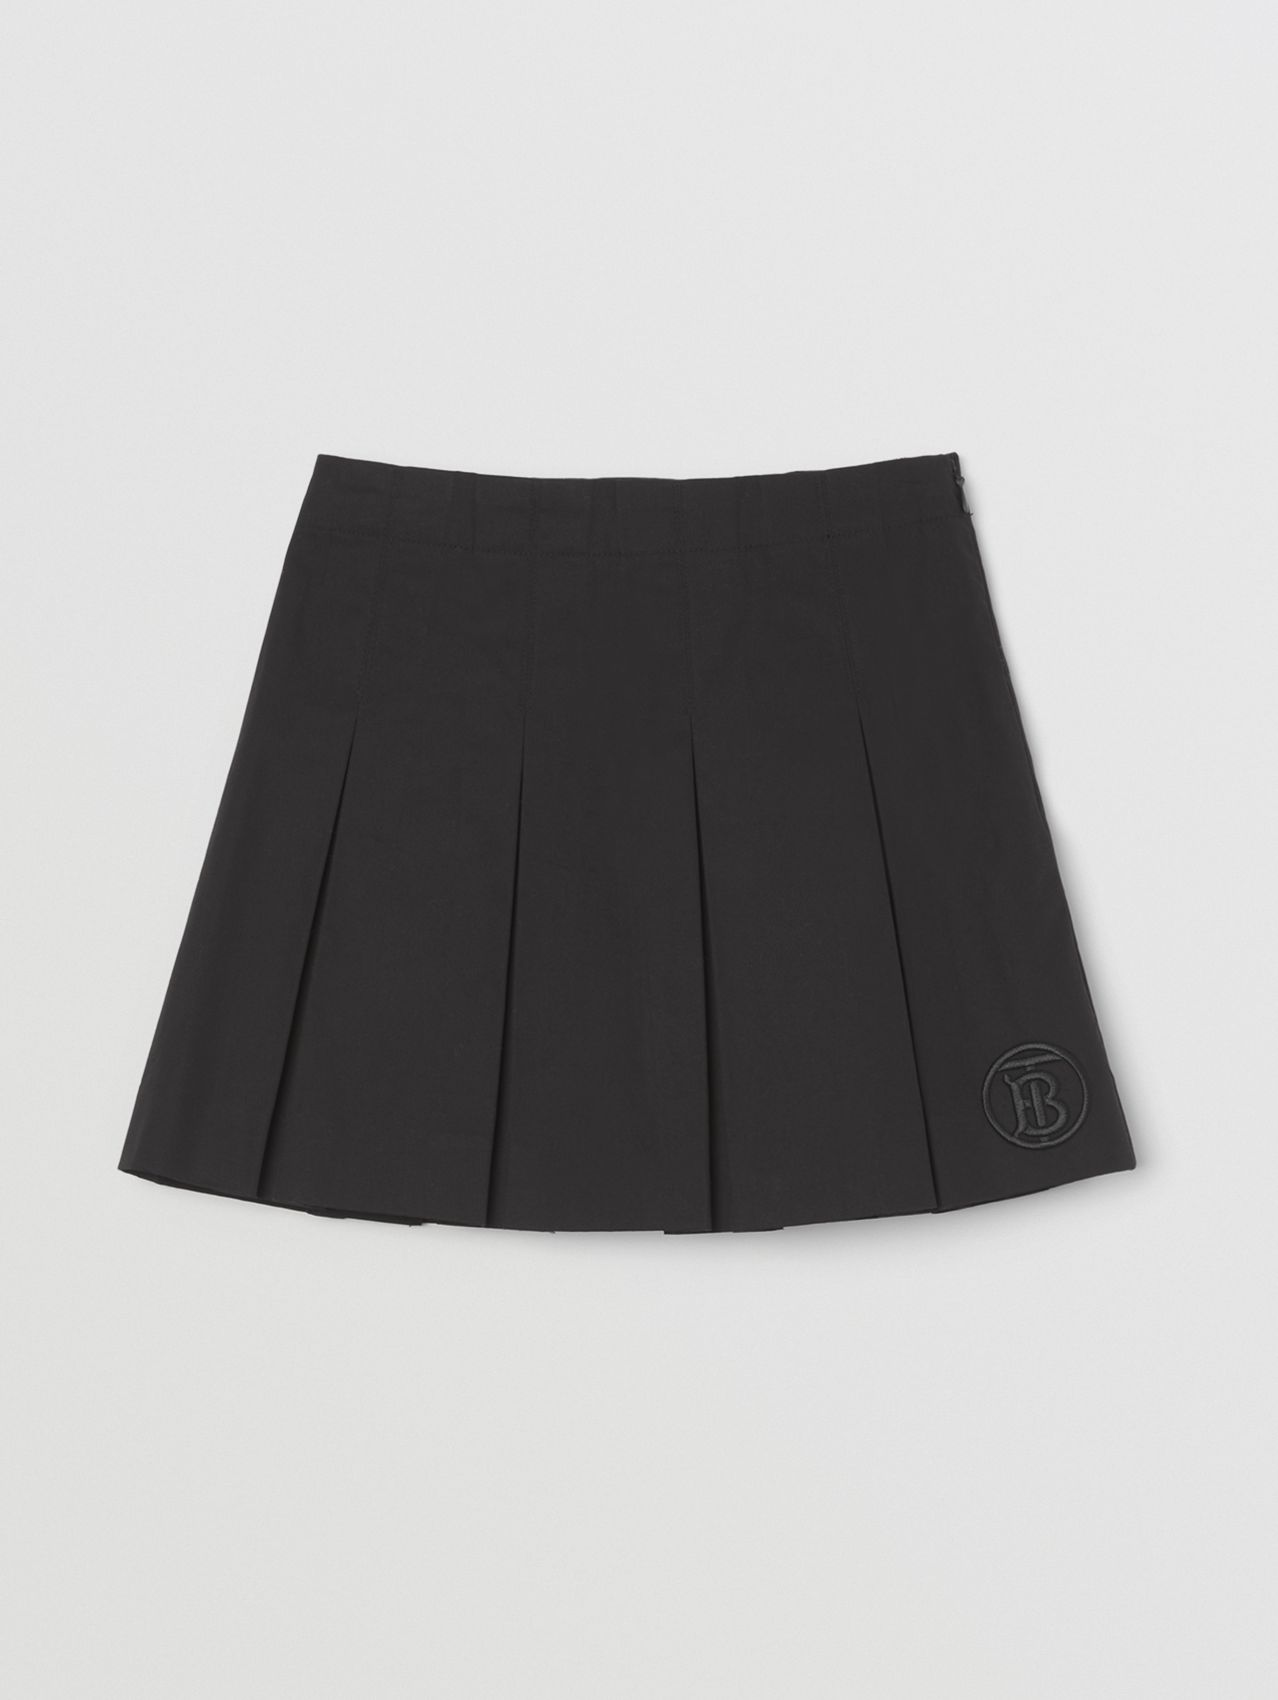 Monogram Motif Pleated Cotton Twill Skirt in Black